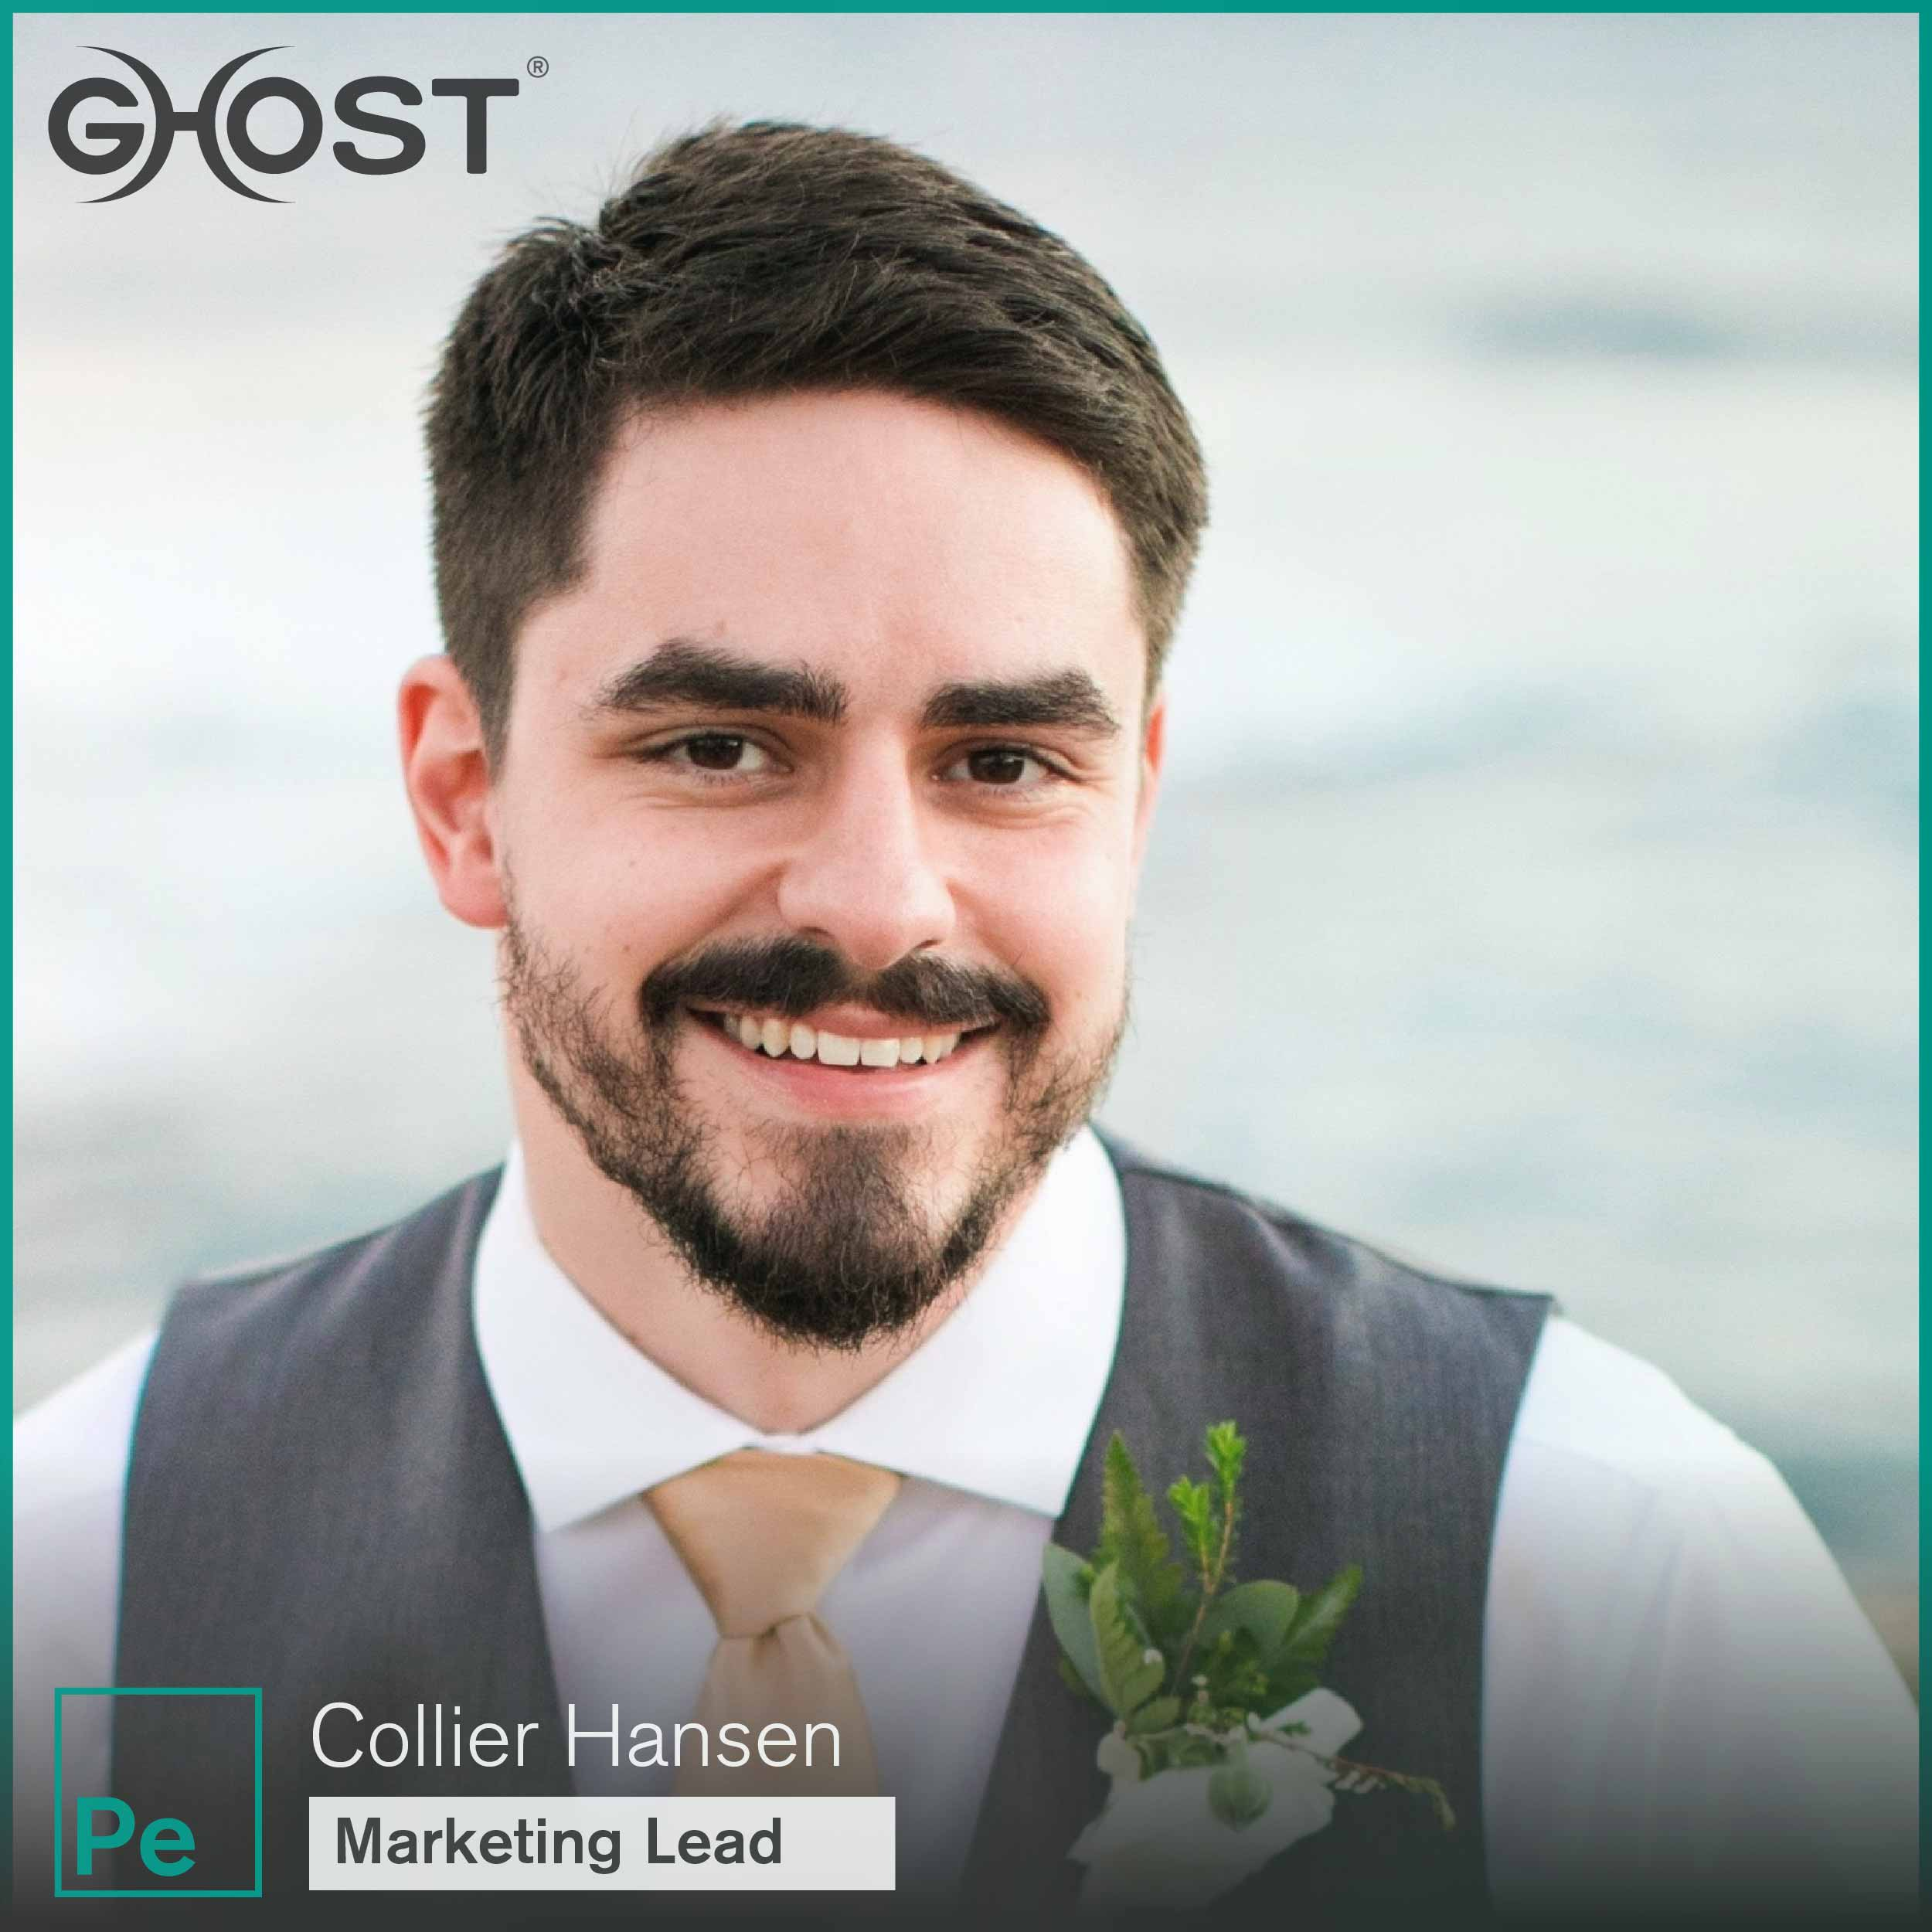 Collier Hansen, Marketing Lead for Ghost Vapes cannabis vaporizers.